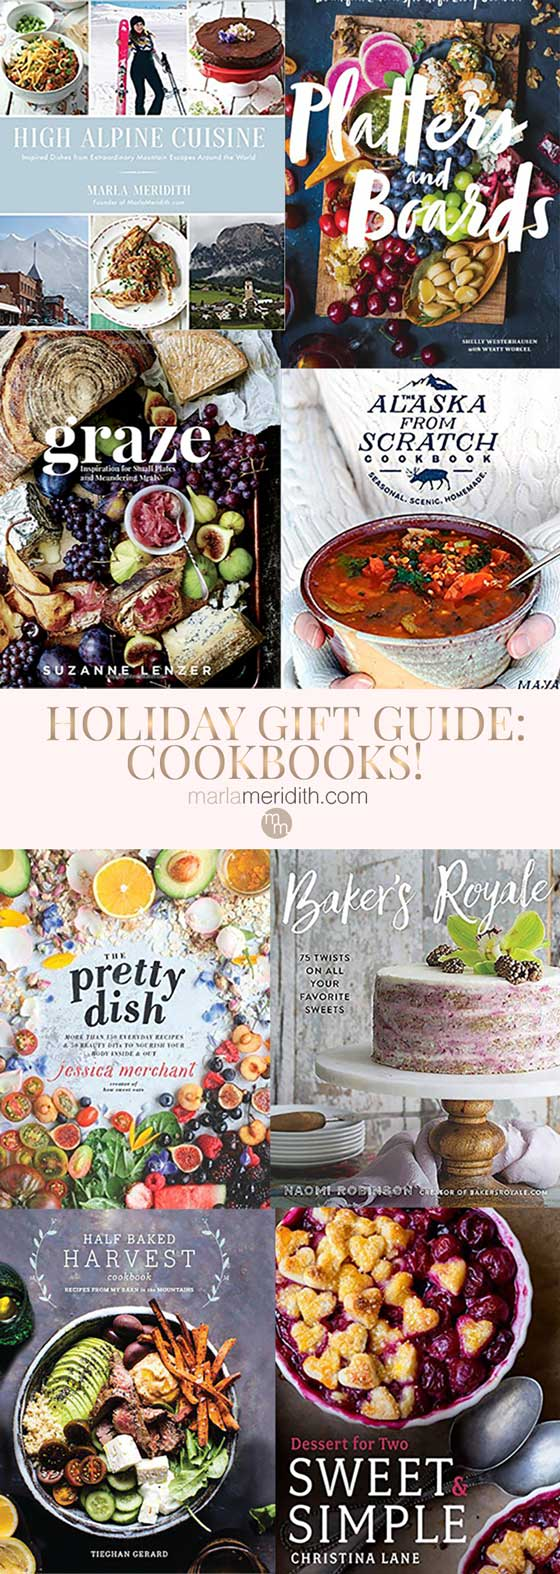 Favorite cookbooks to buy for holiday gifts! Featured on MarlaMeridith.com